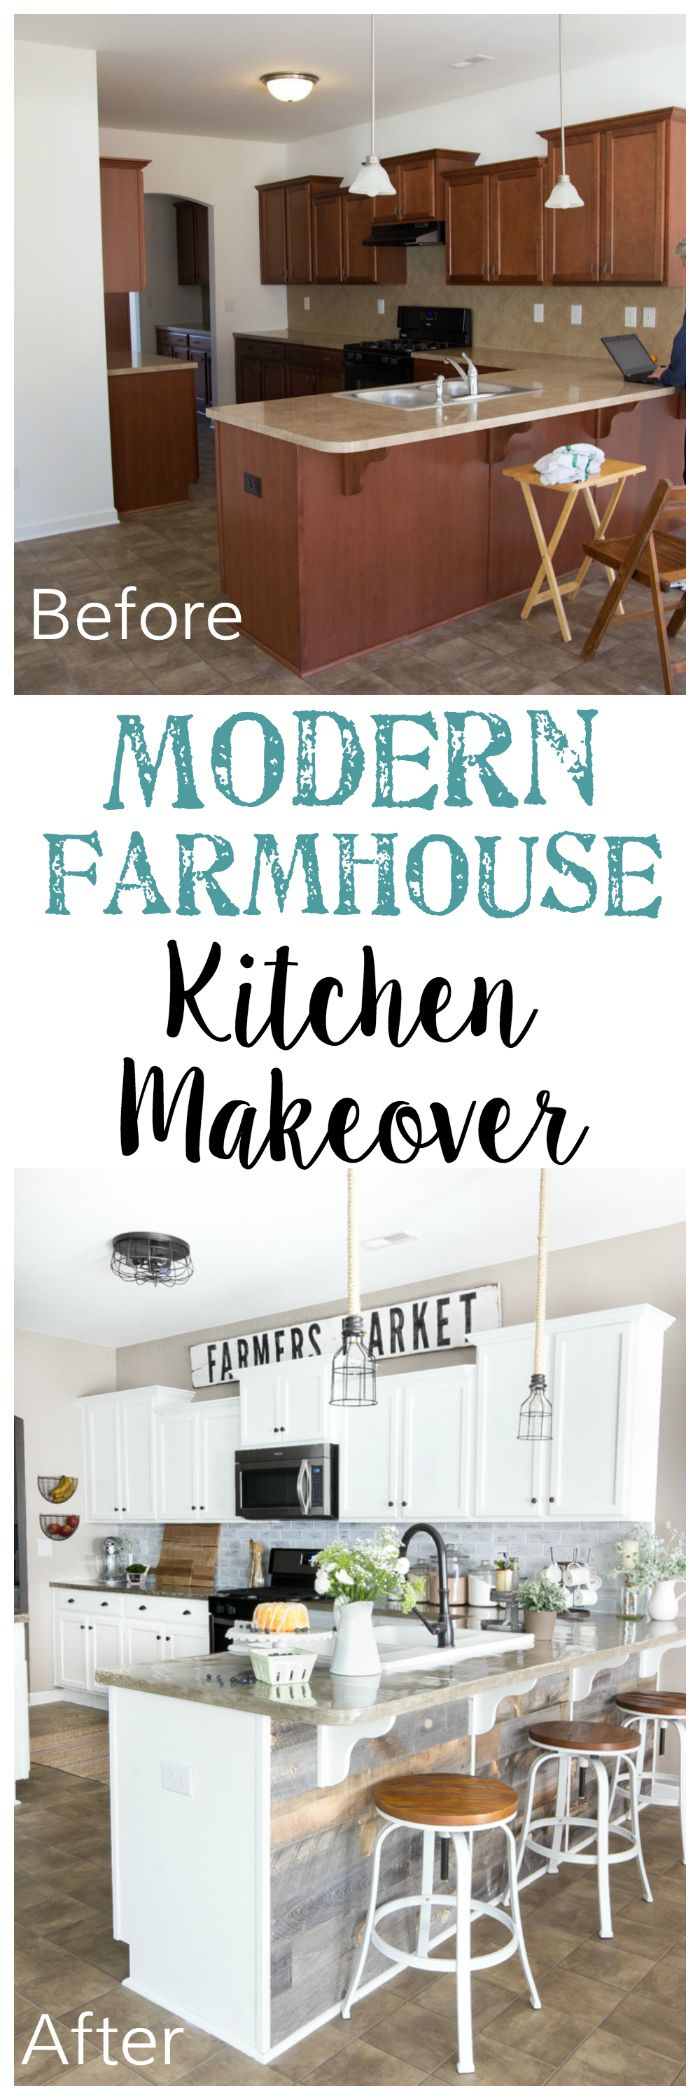 Style Their Style: Affordable Summer Updates | Farmhouse ideas ...